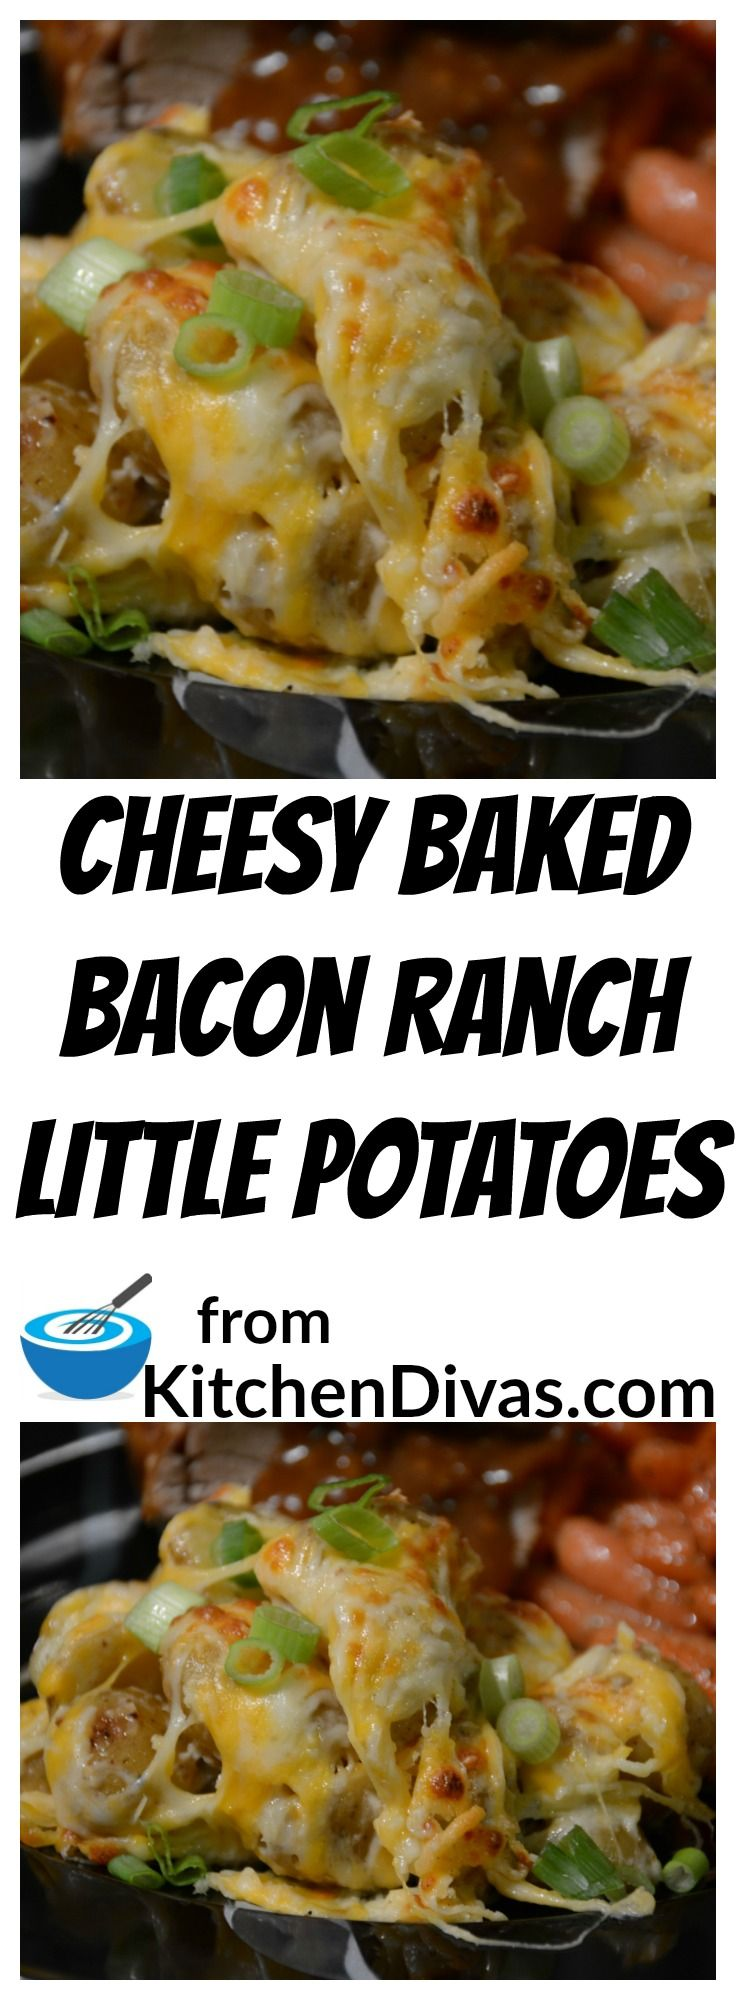 We love potatoes around here. Cheesy Baked Bacon Ranch Little Potatoes ...